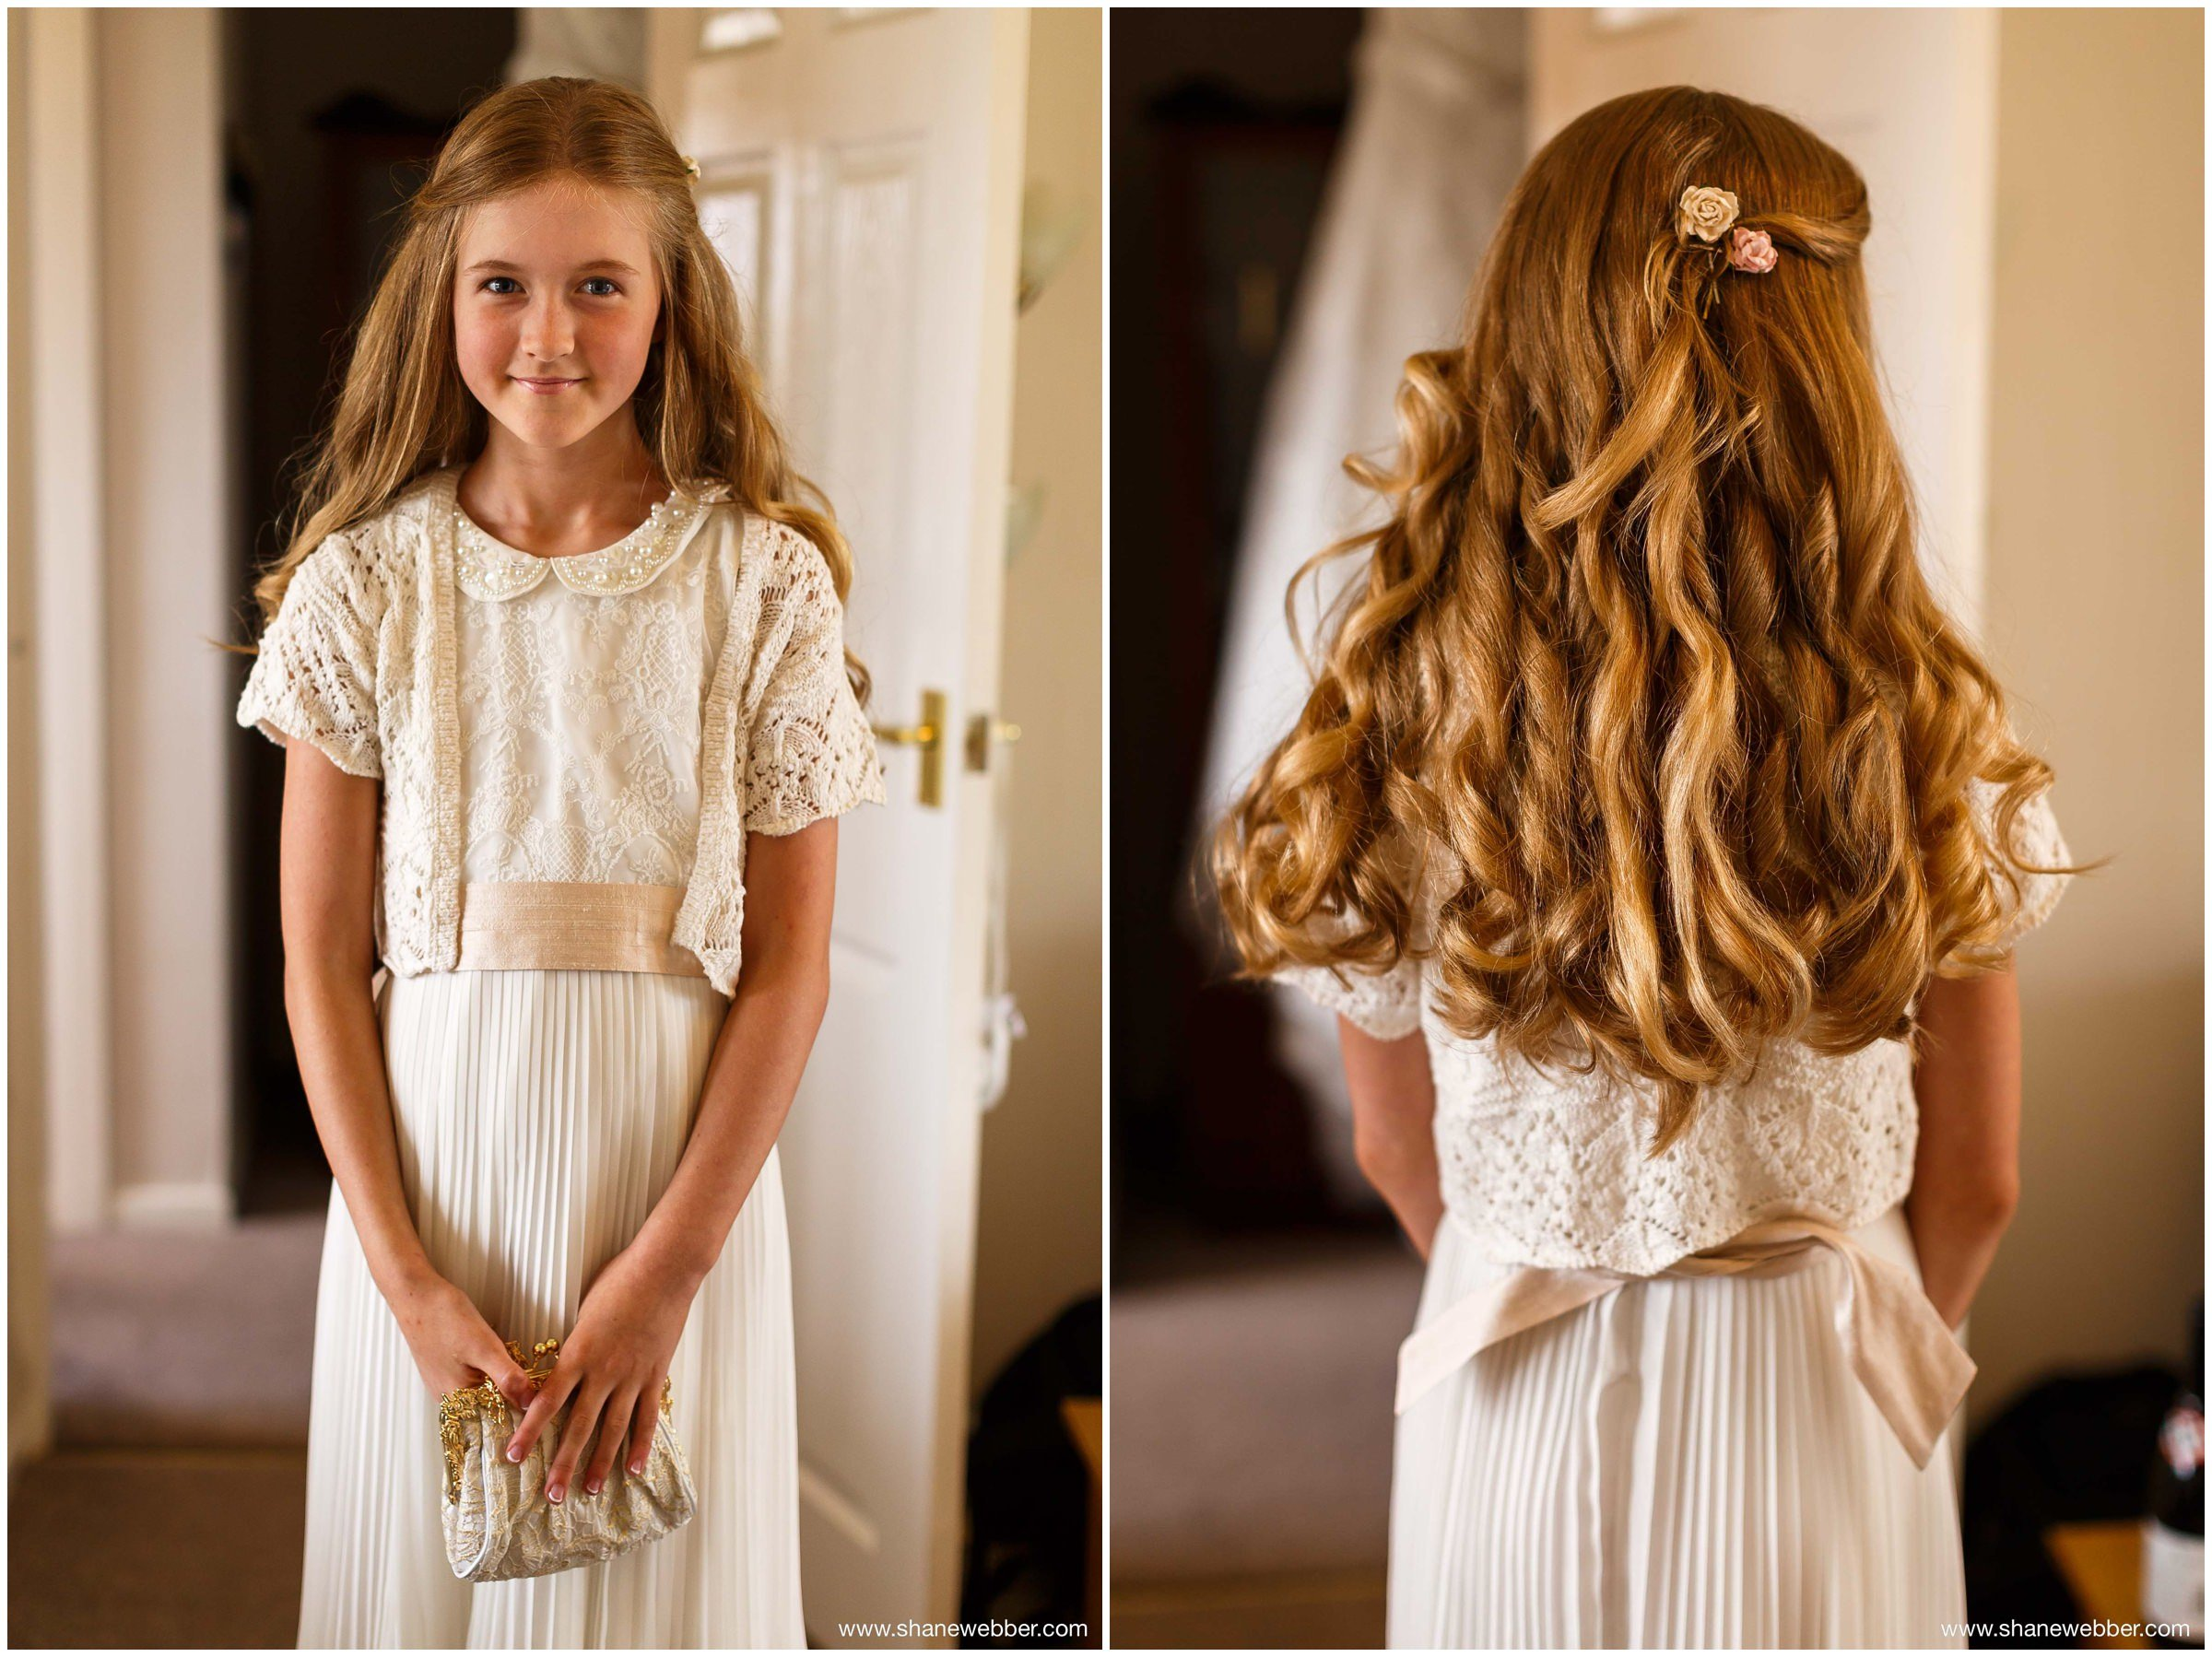 Flower girl curled wedding hair inspiration